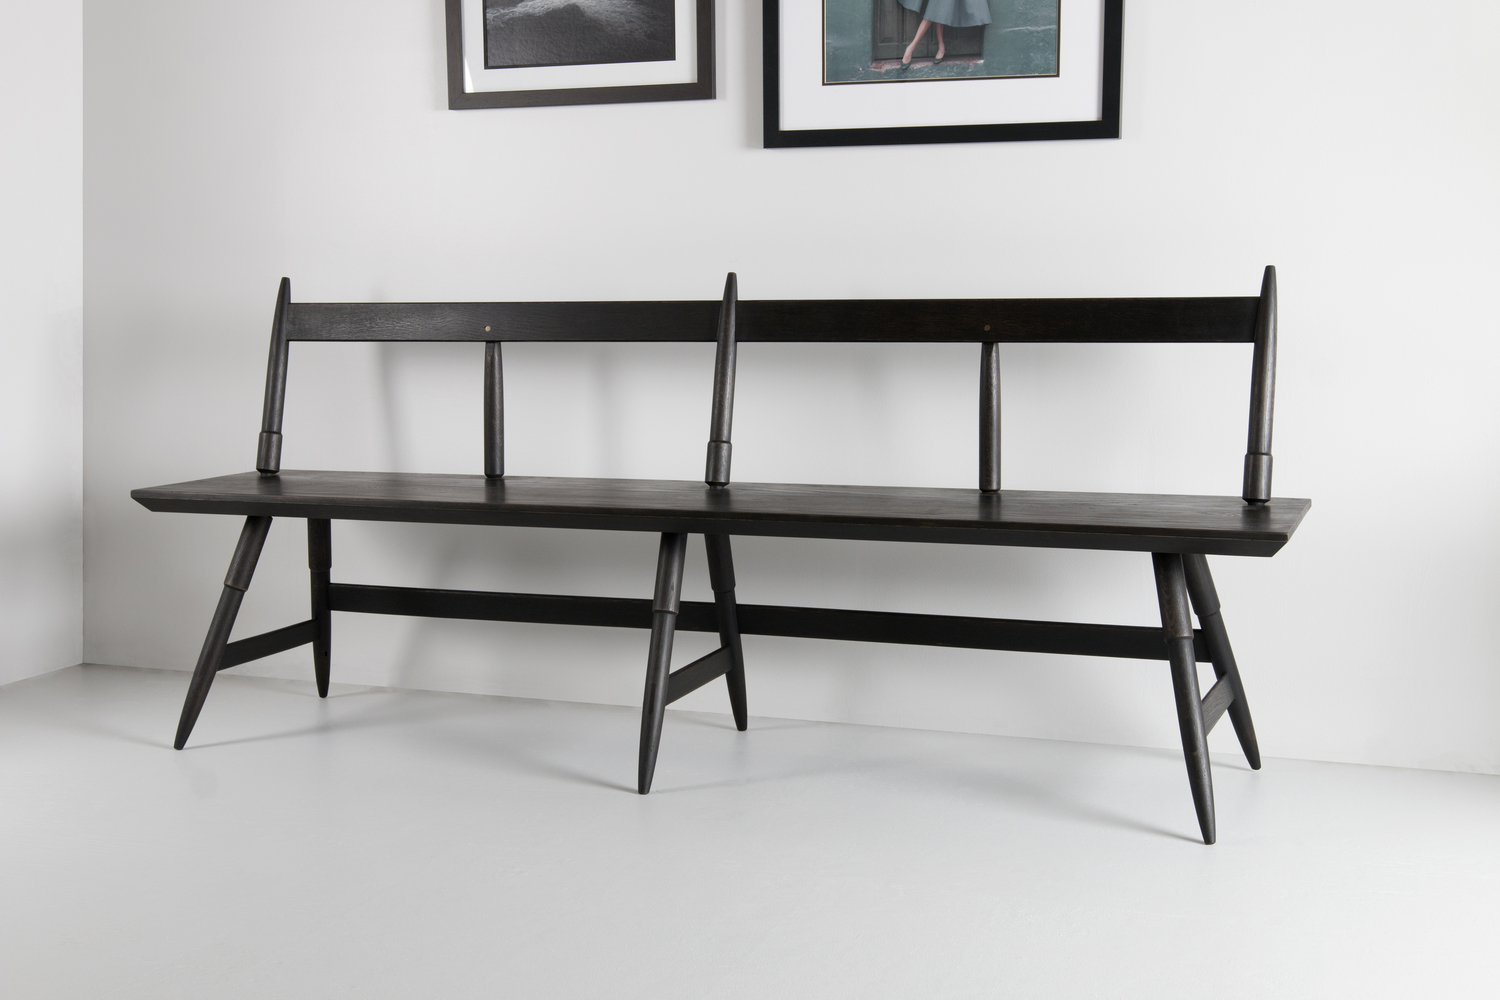 Rockport bench with pictures above at angle studio dunn